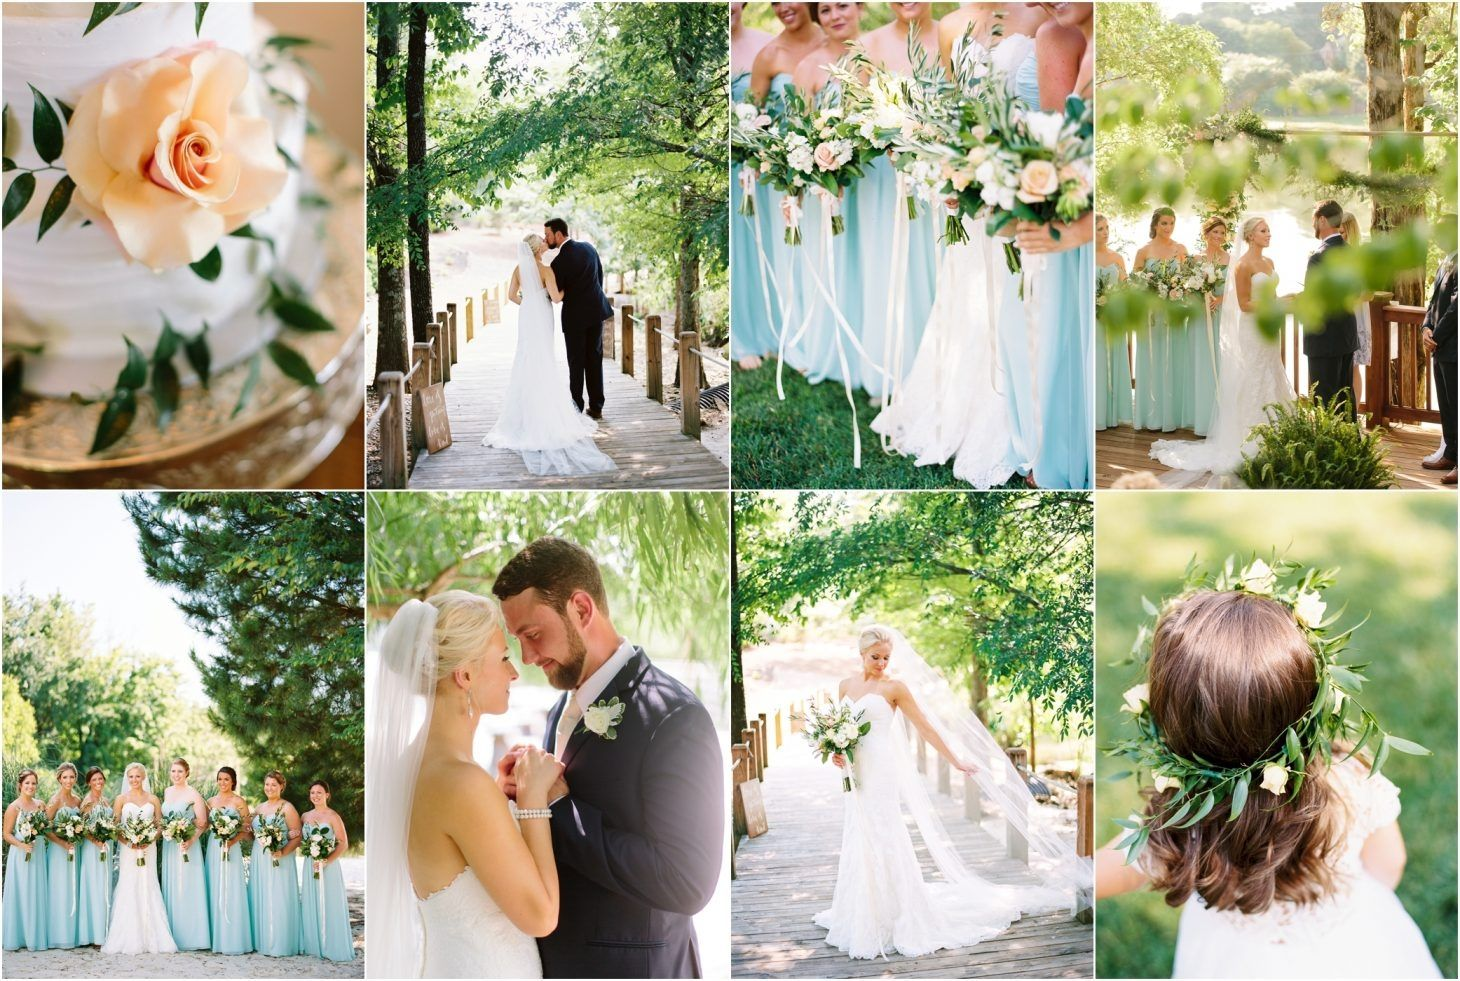 Spring wedding with coral bouquets by Swank Floral at Hunter Valley Farm in Knoxville, TN!